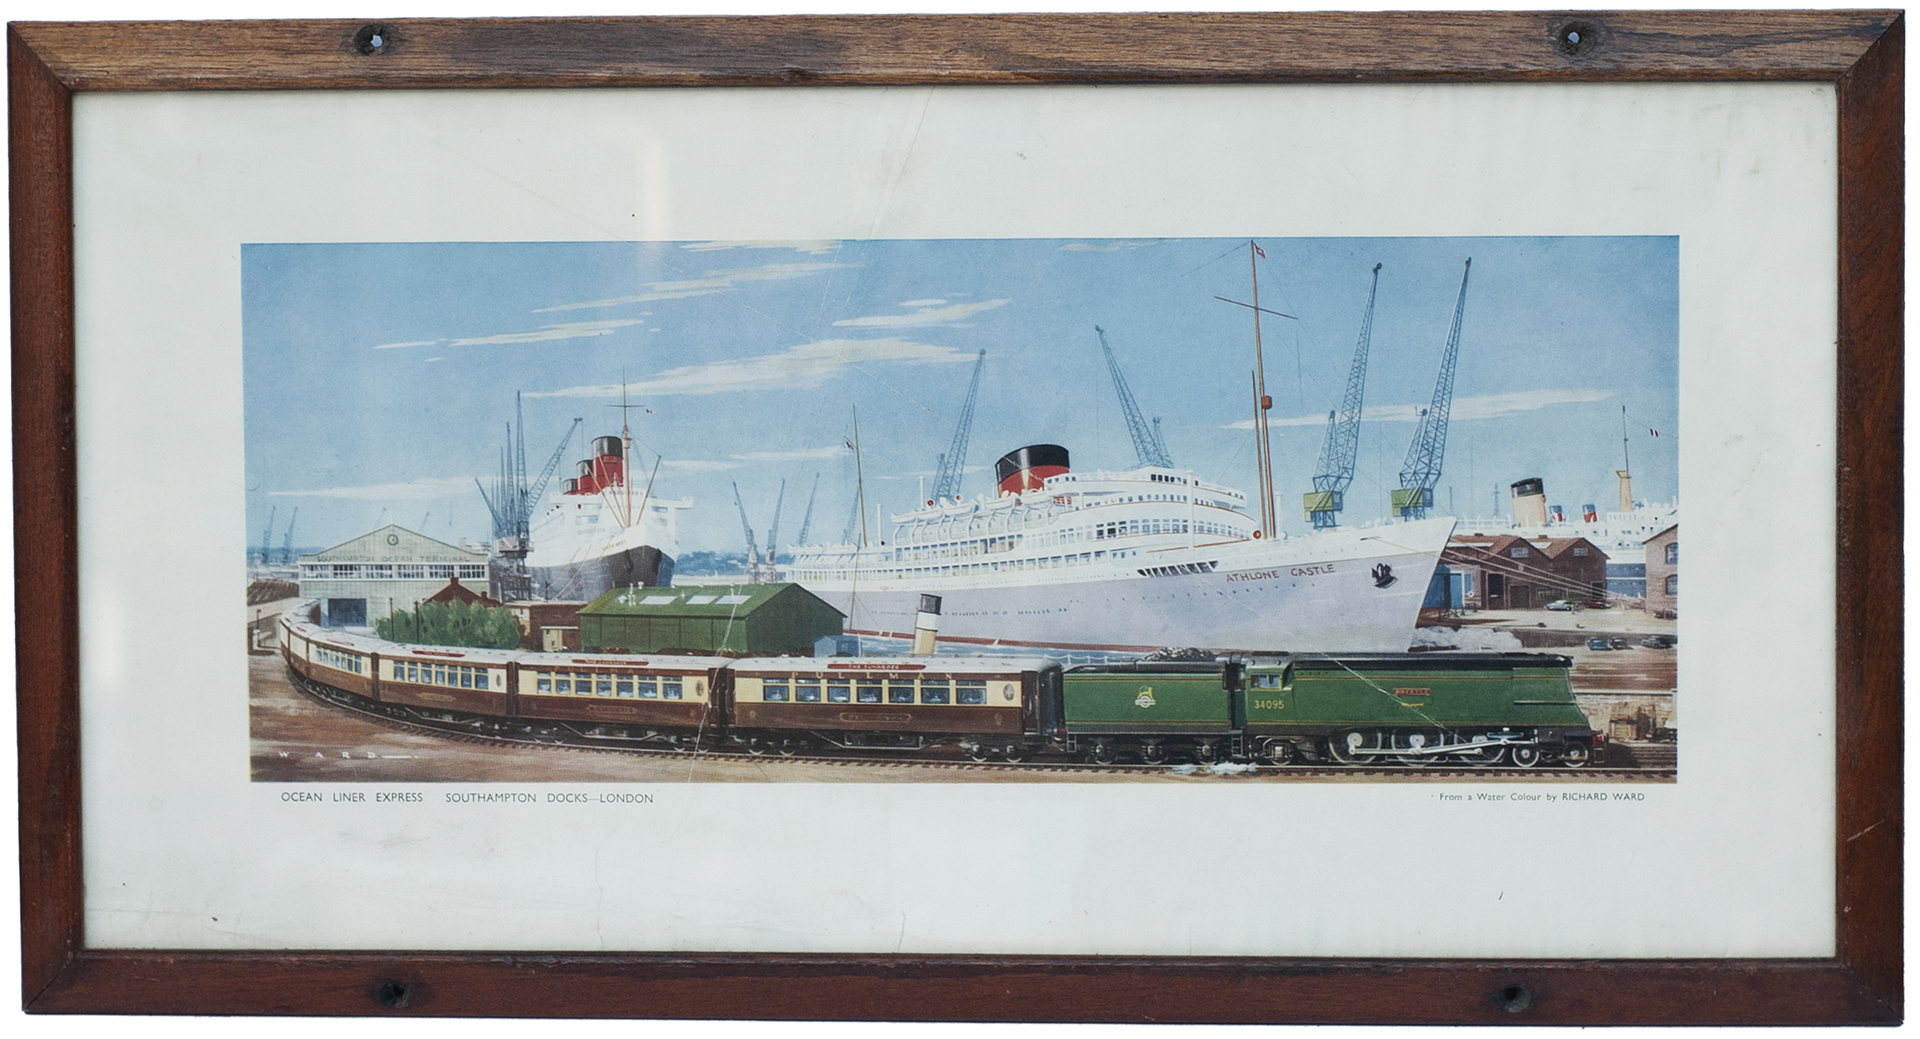 Carriage Print OCEAN LINER EXPRESS SOUTHAMPTON